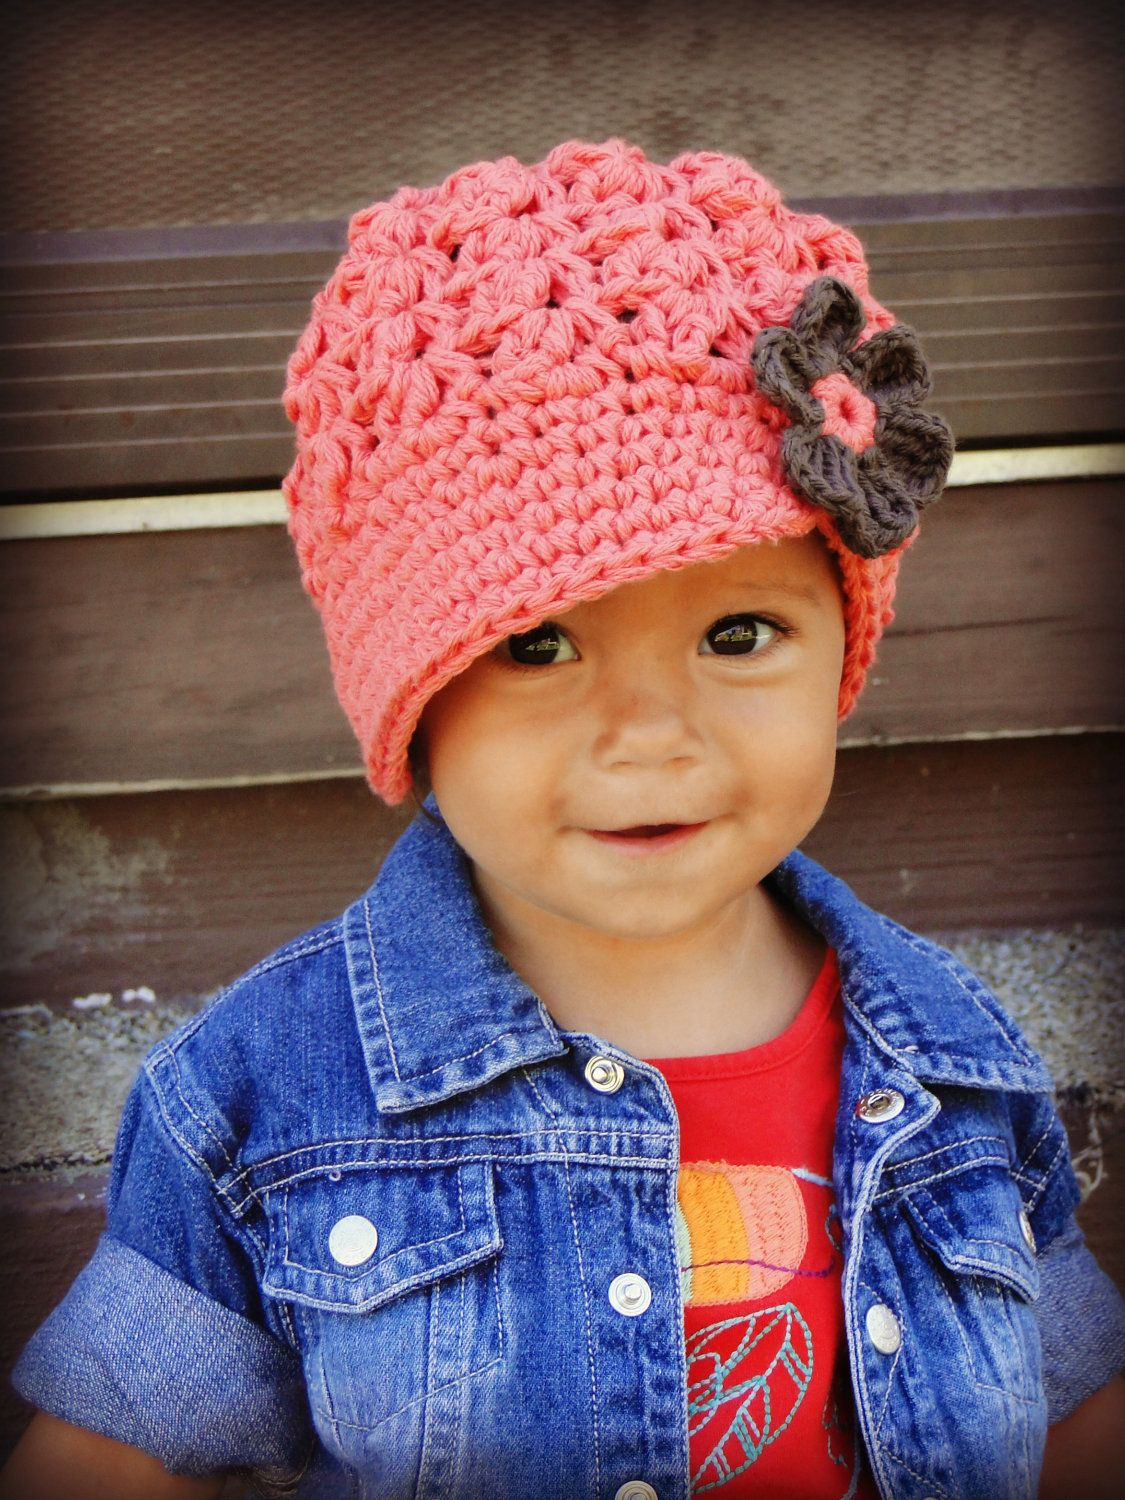 Crochet+Baby+Hat+kids+hat+crochet+newsboy+hat+by+JuneBugBeanies,+$ ...